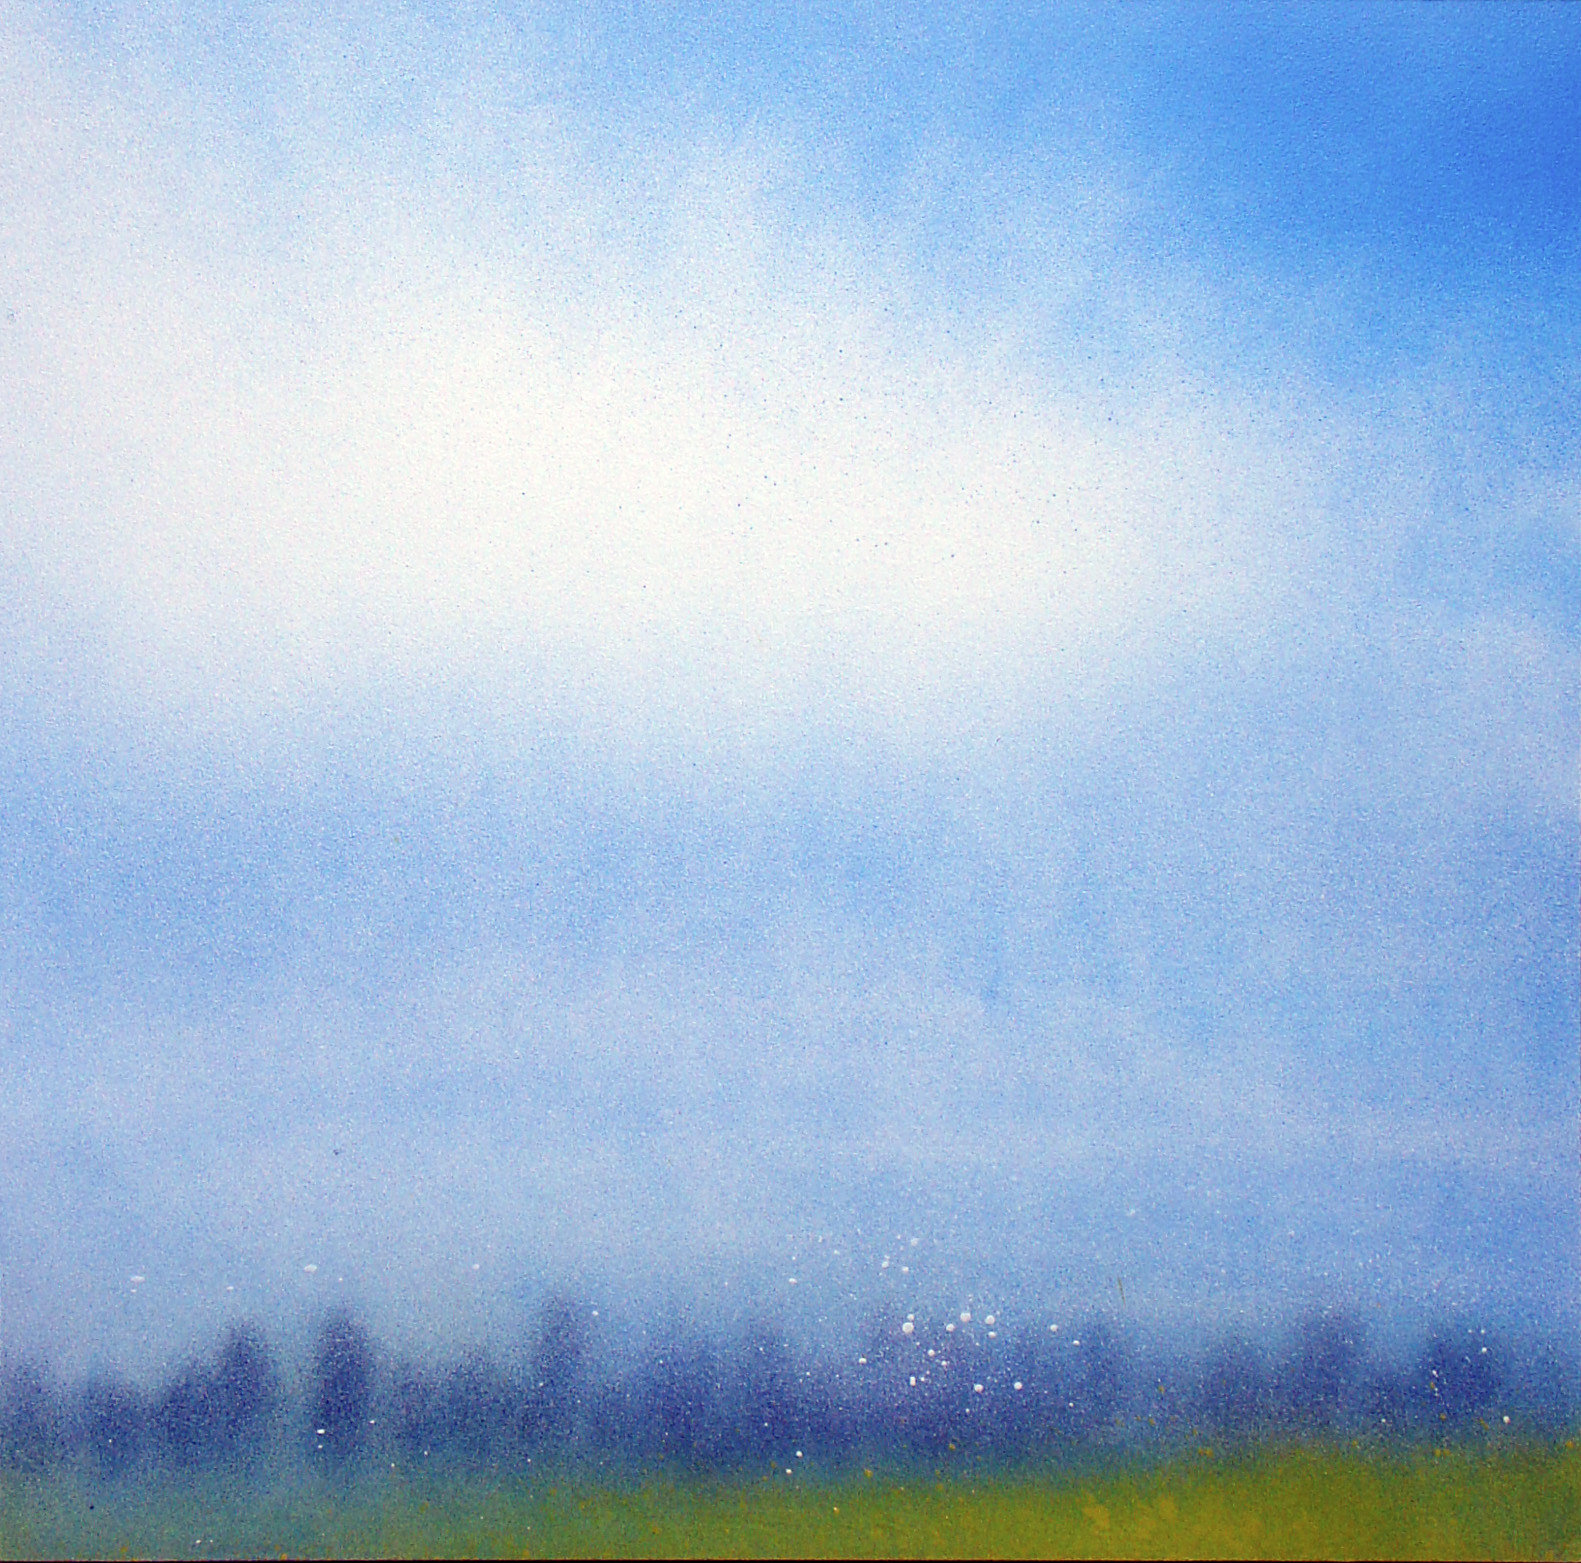 Tree Line With Cloudy Sky 2016